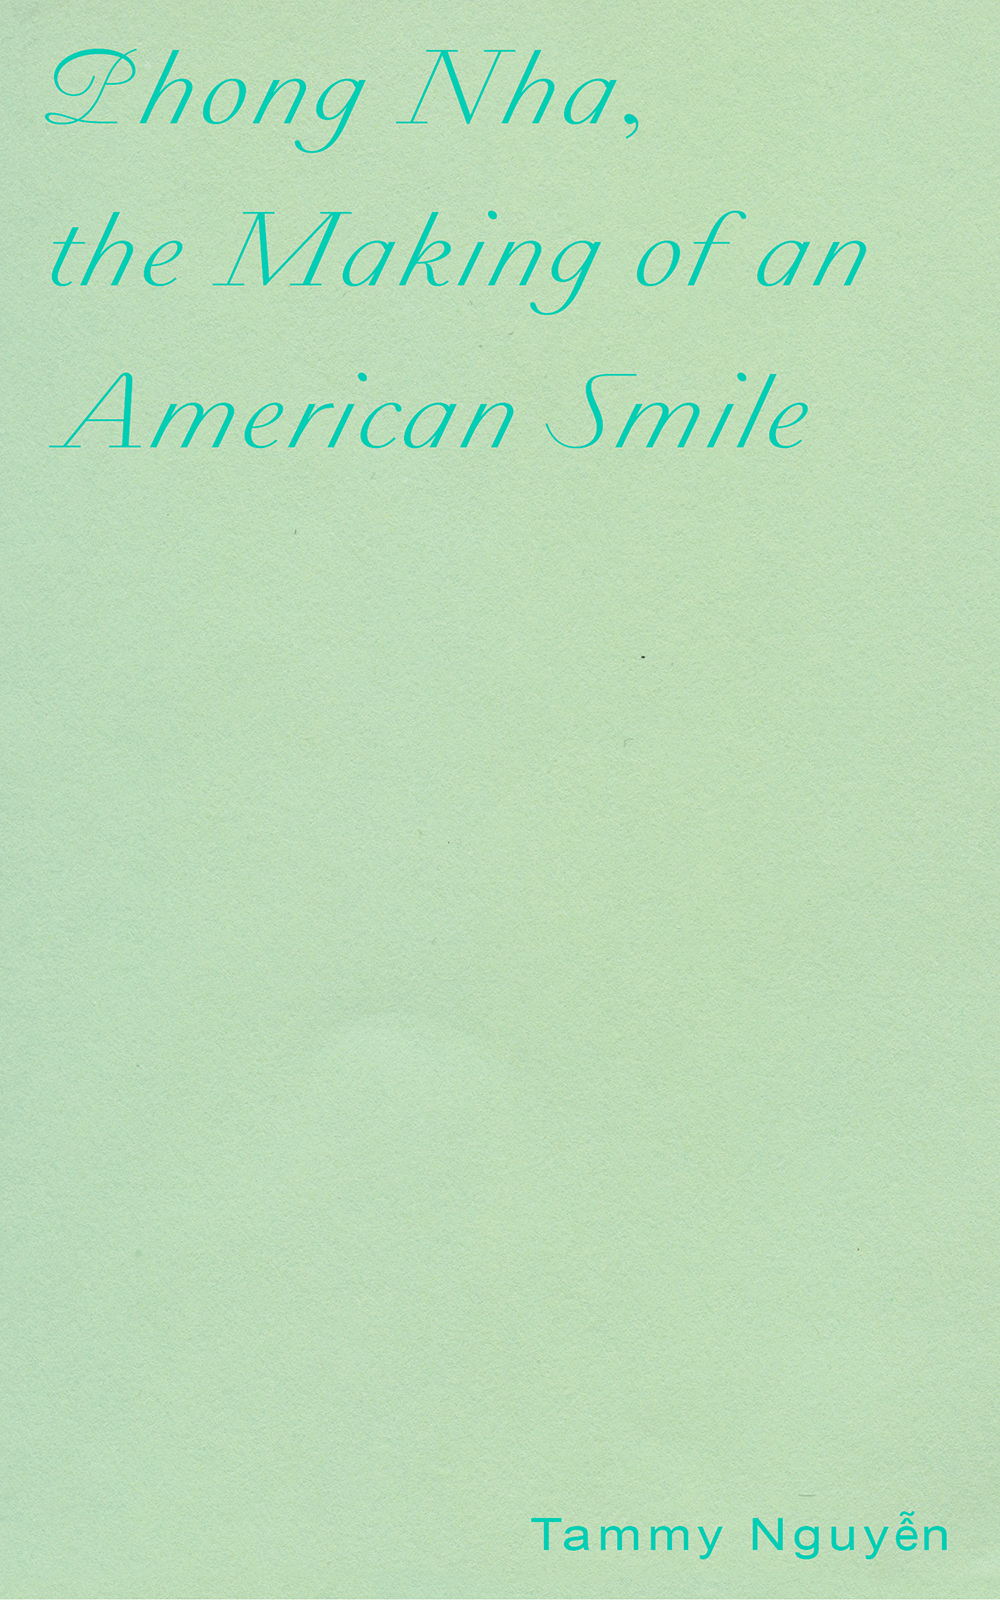 Phong Nha, the Making of an American Smile